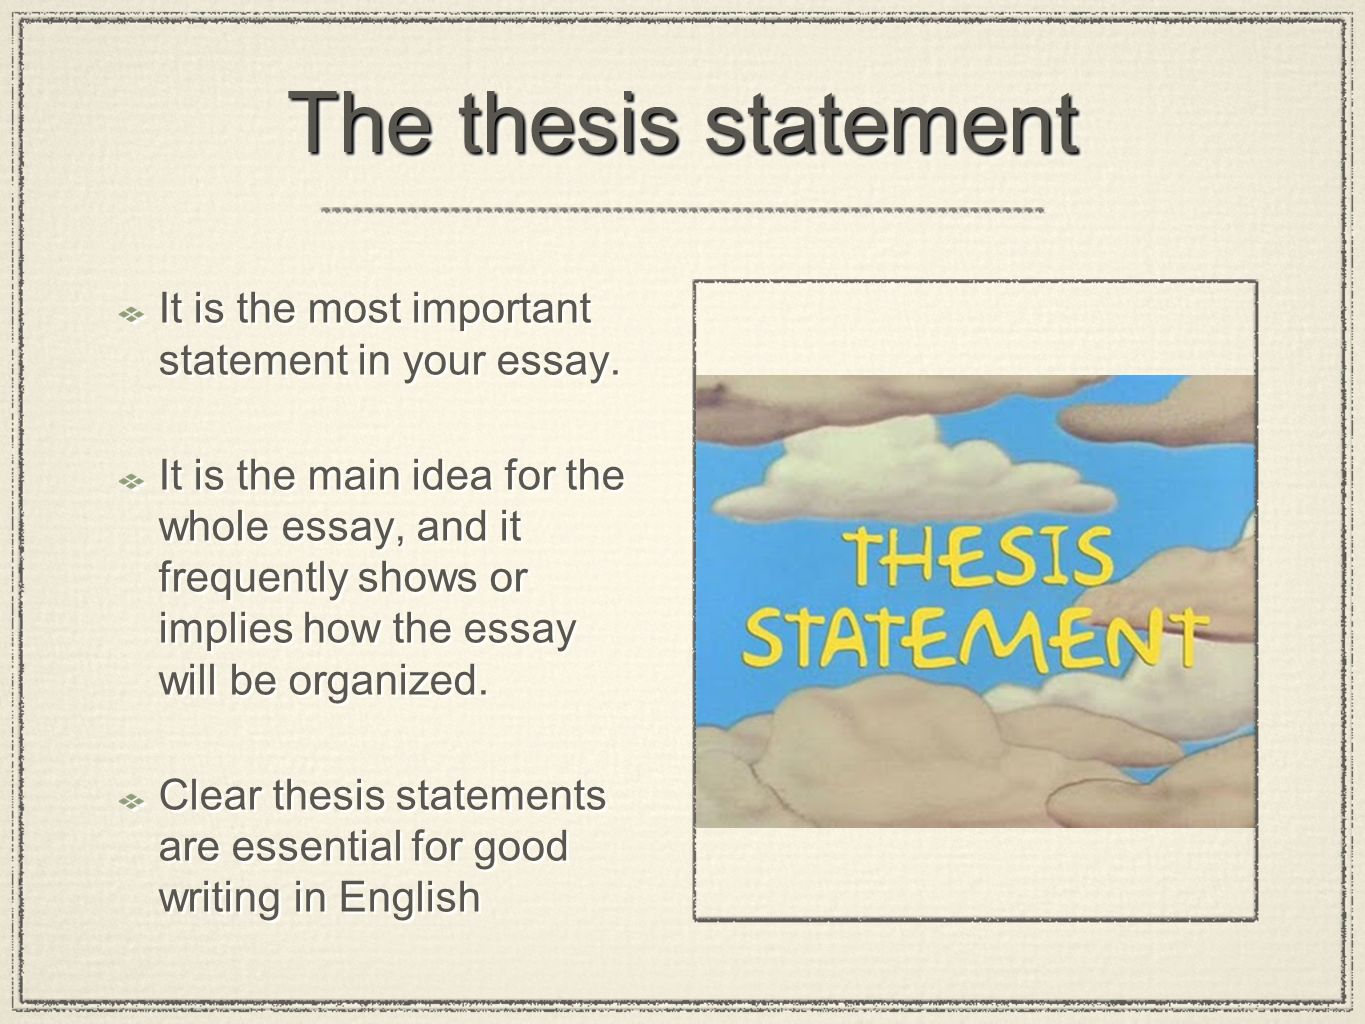 Understanding the importance of hypothesis in a thesis